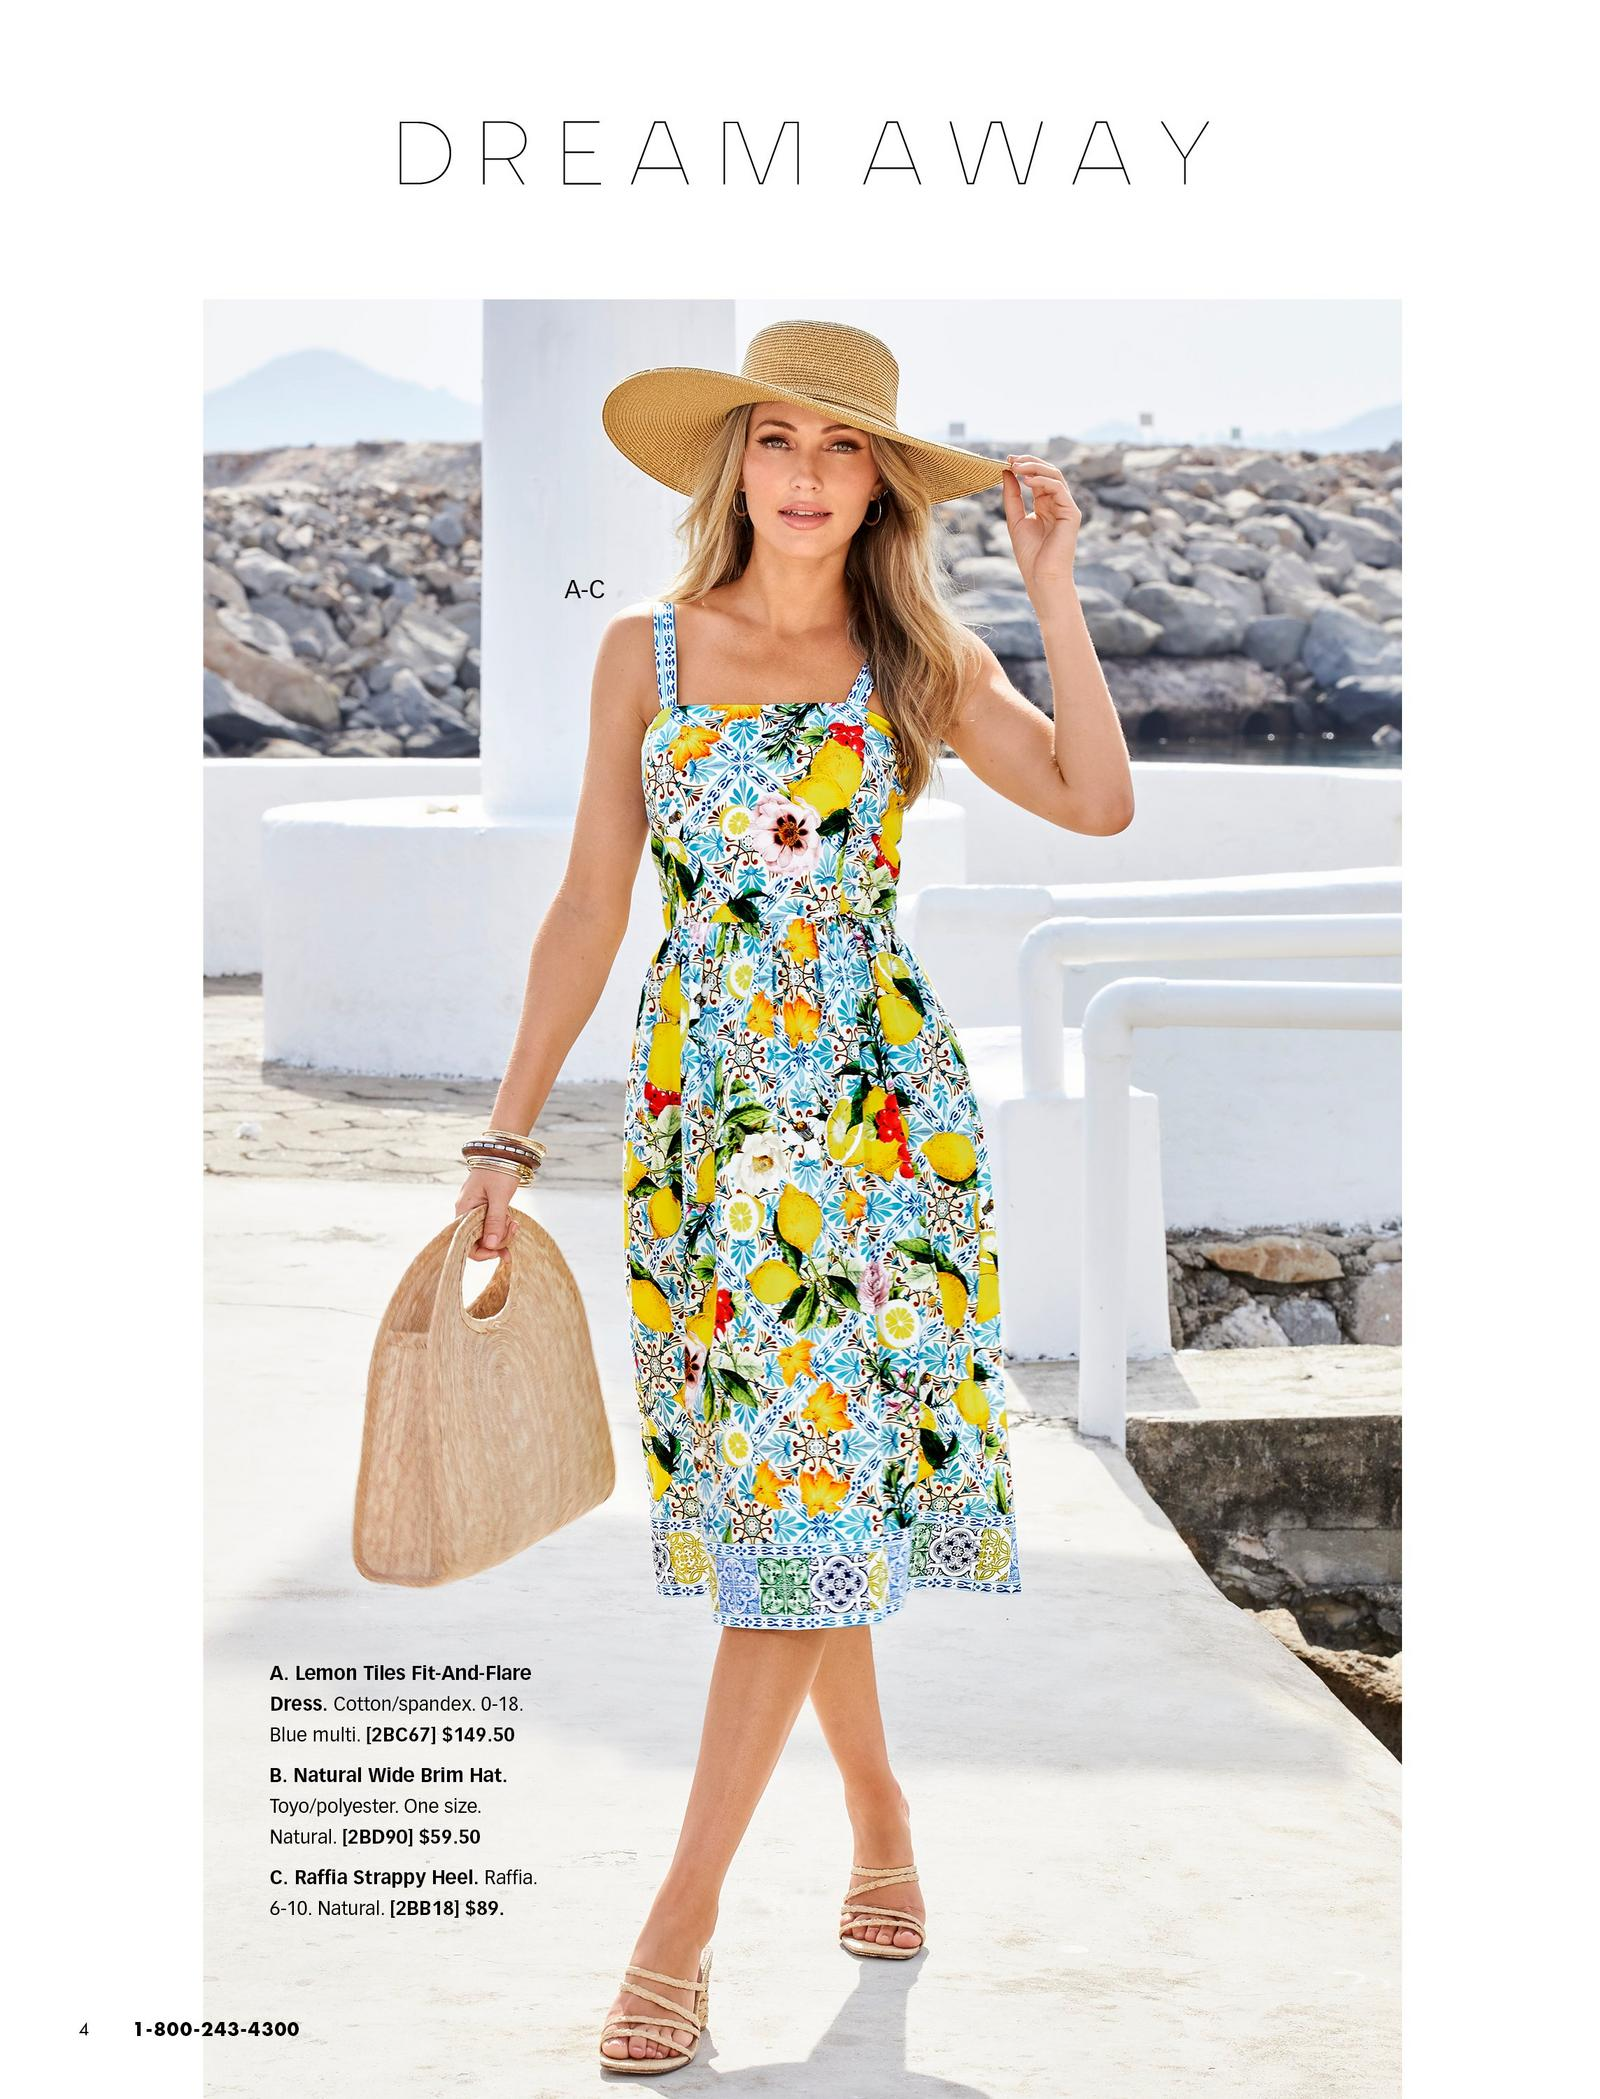 model wearing a lemon and tile print fit and flare sleeveless midi dress, raffia strappy heels, straw hat, and holding a straw bag.